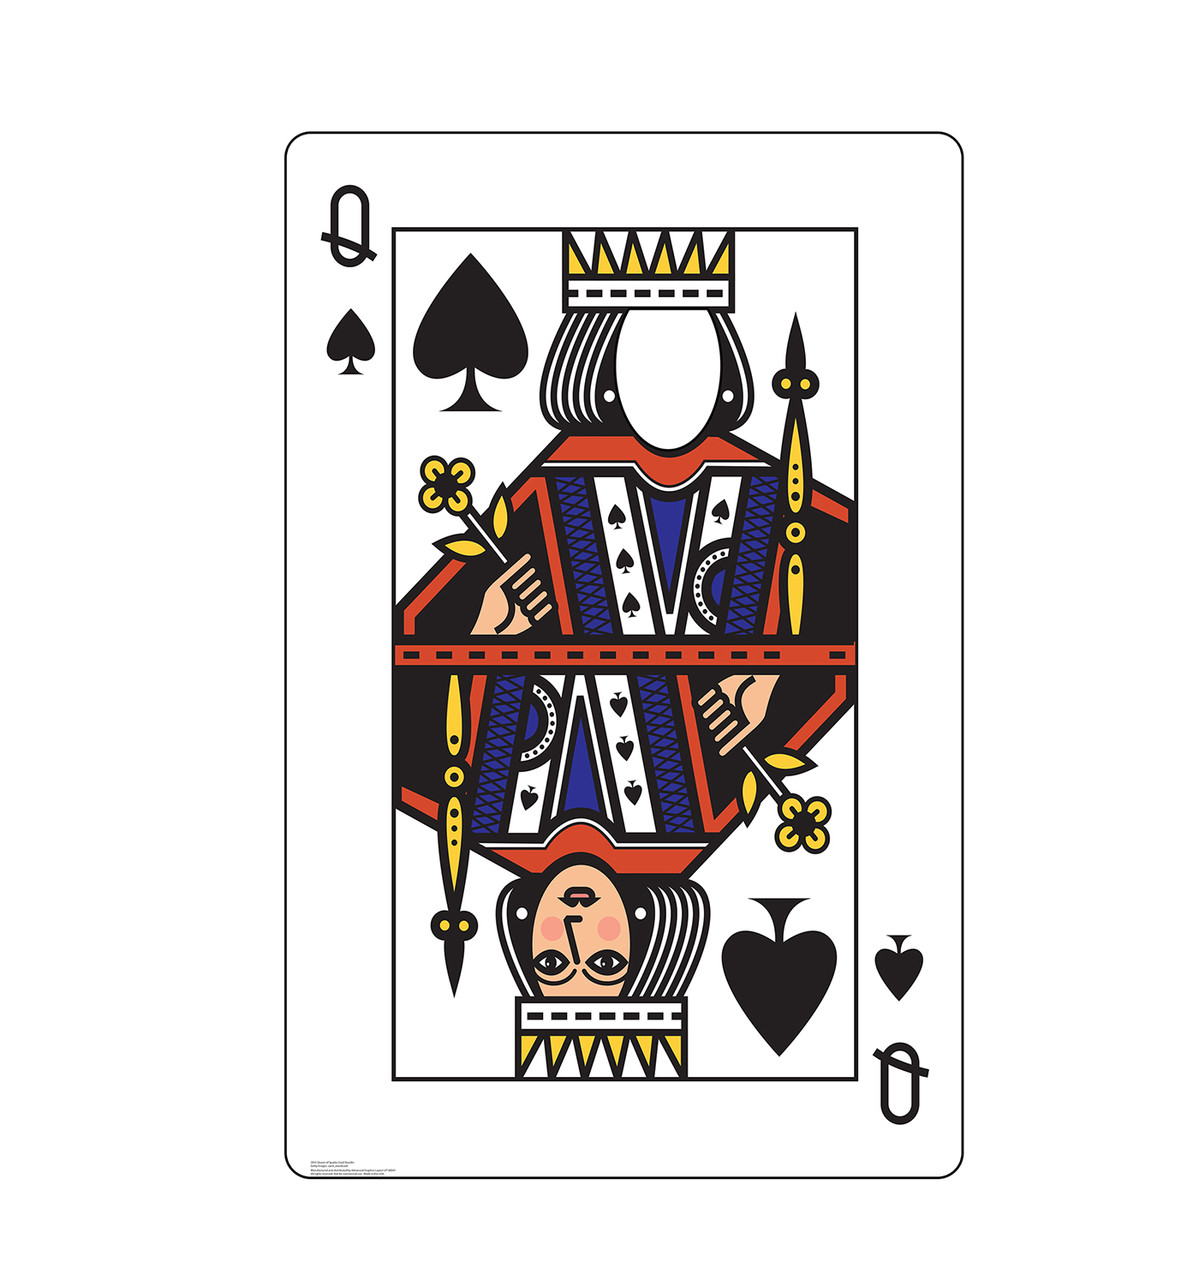 Life-size cardboard standee of the Queen of Spades Card standin.